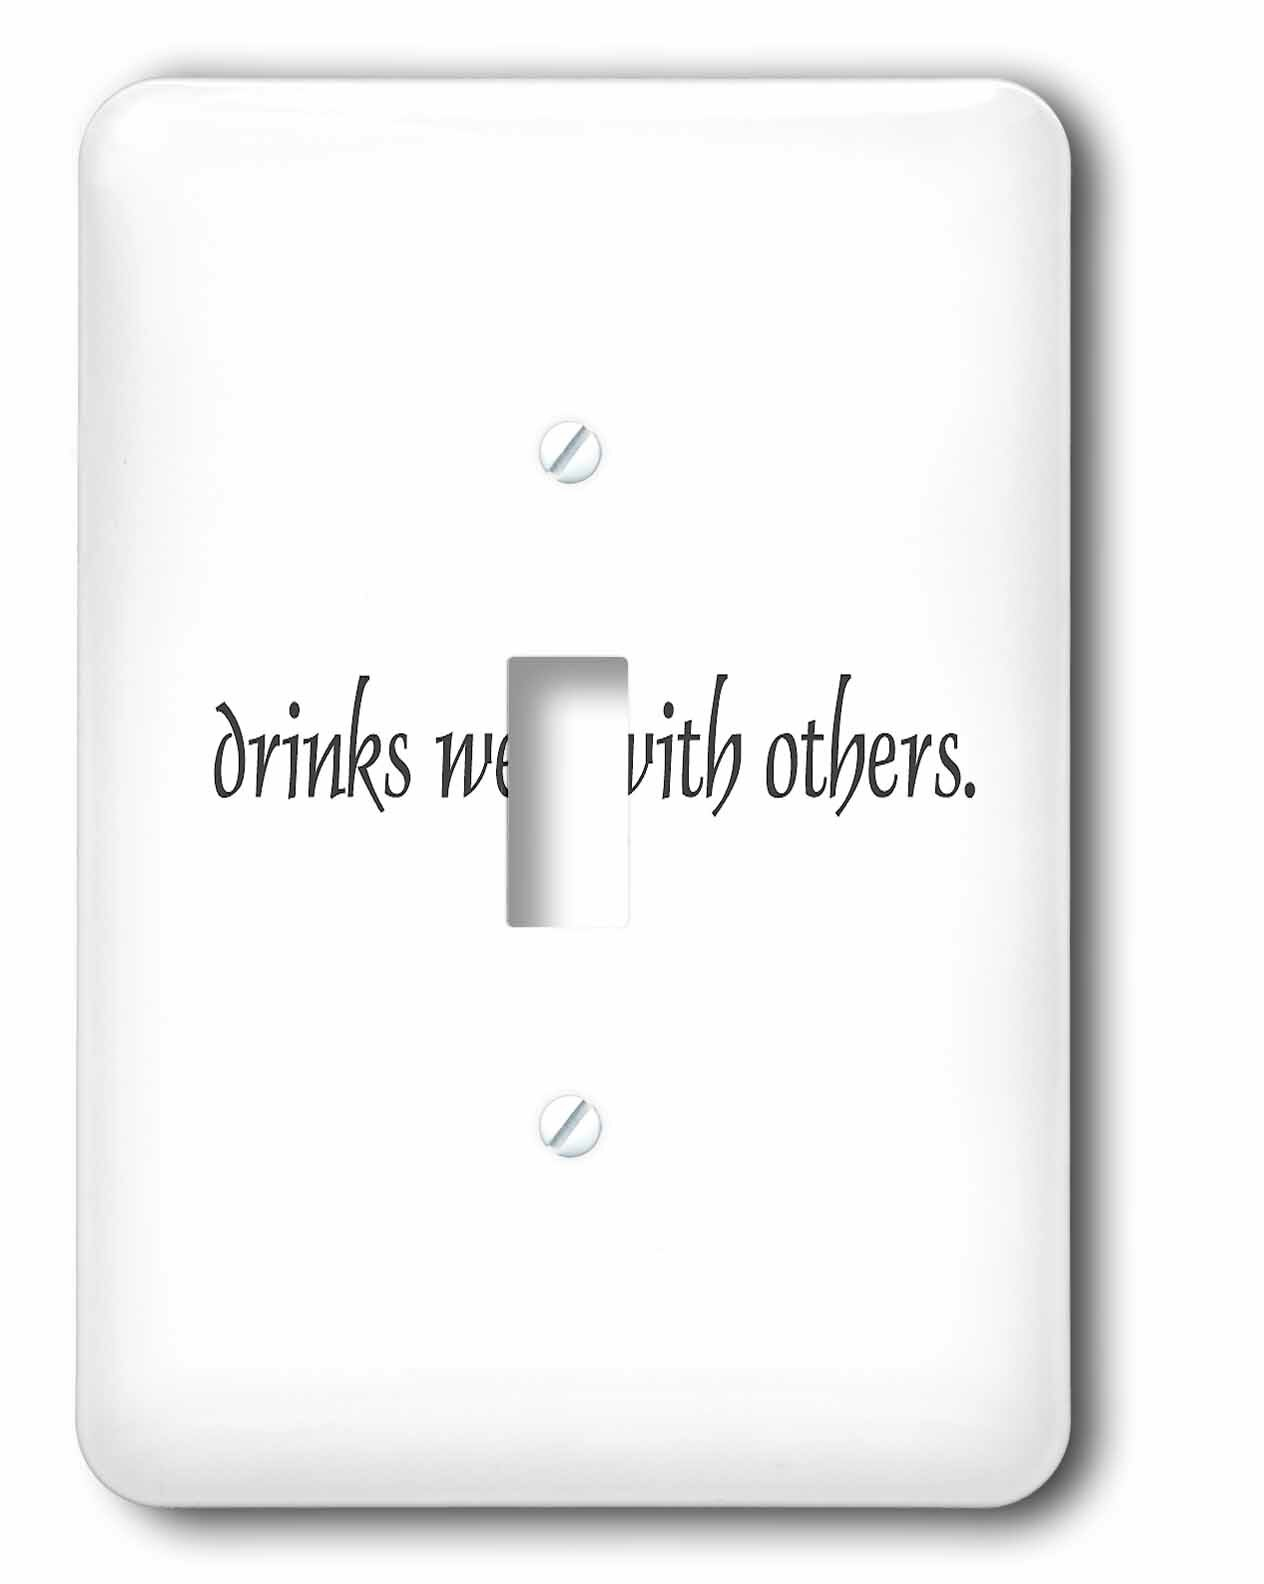 3drose Drinks Well With Others 1 Gang Toggle Light Switch Wall Plate Wayfair